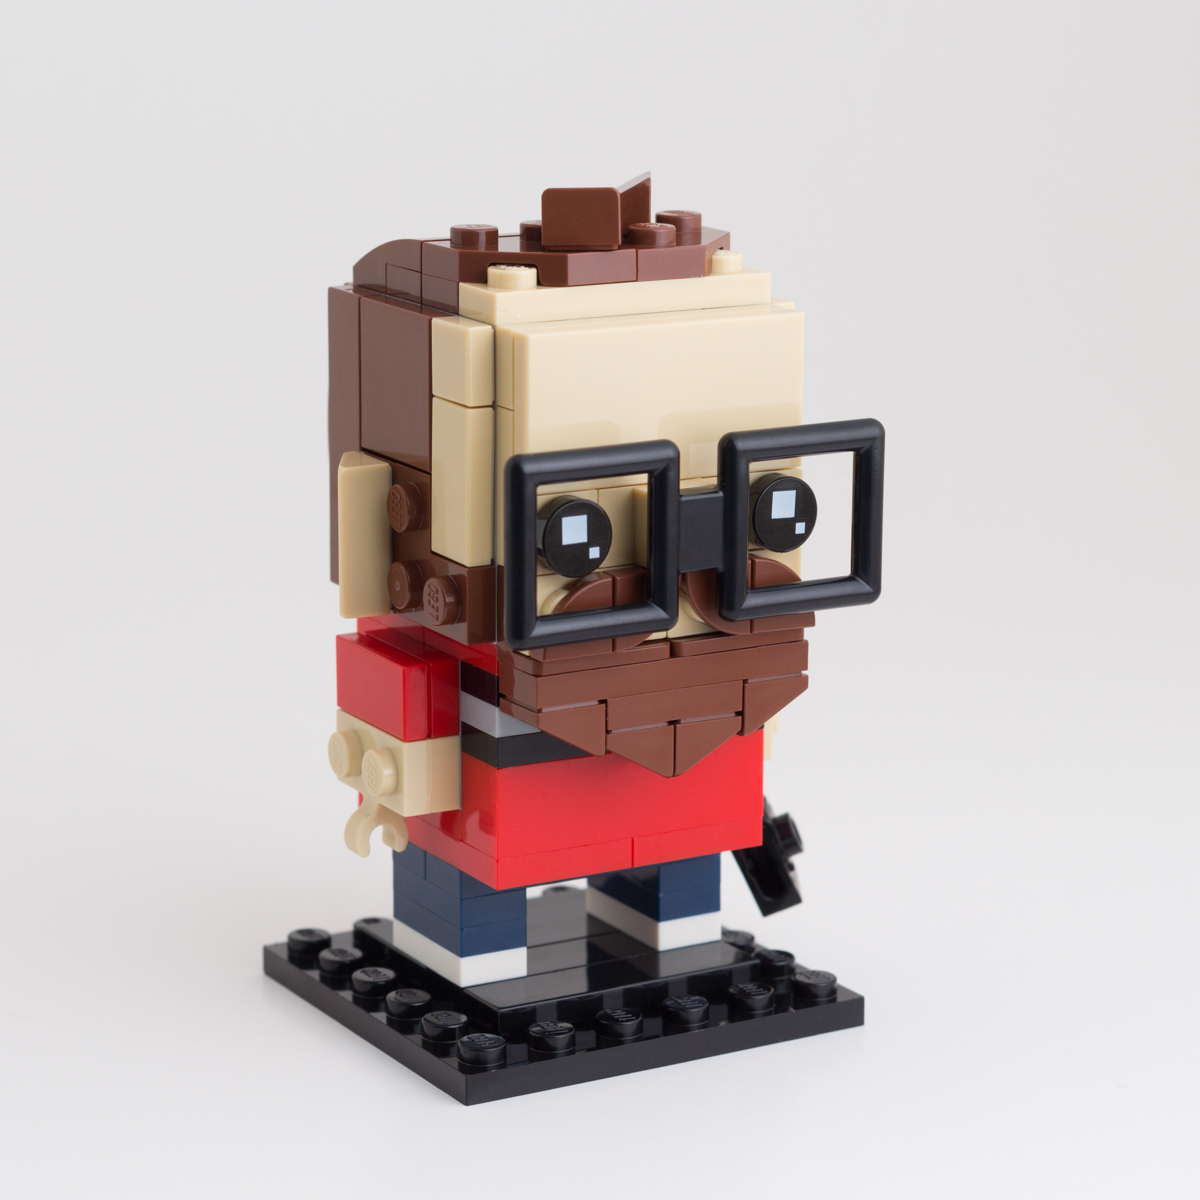 Modified 2 x 2 with Bar Frame Square Reddish Brown 4 NEW LEGO Plate